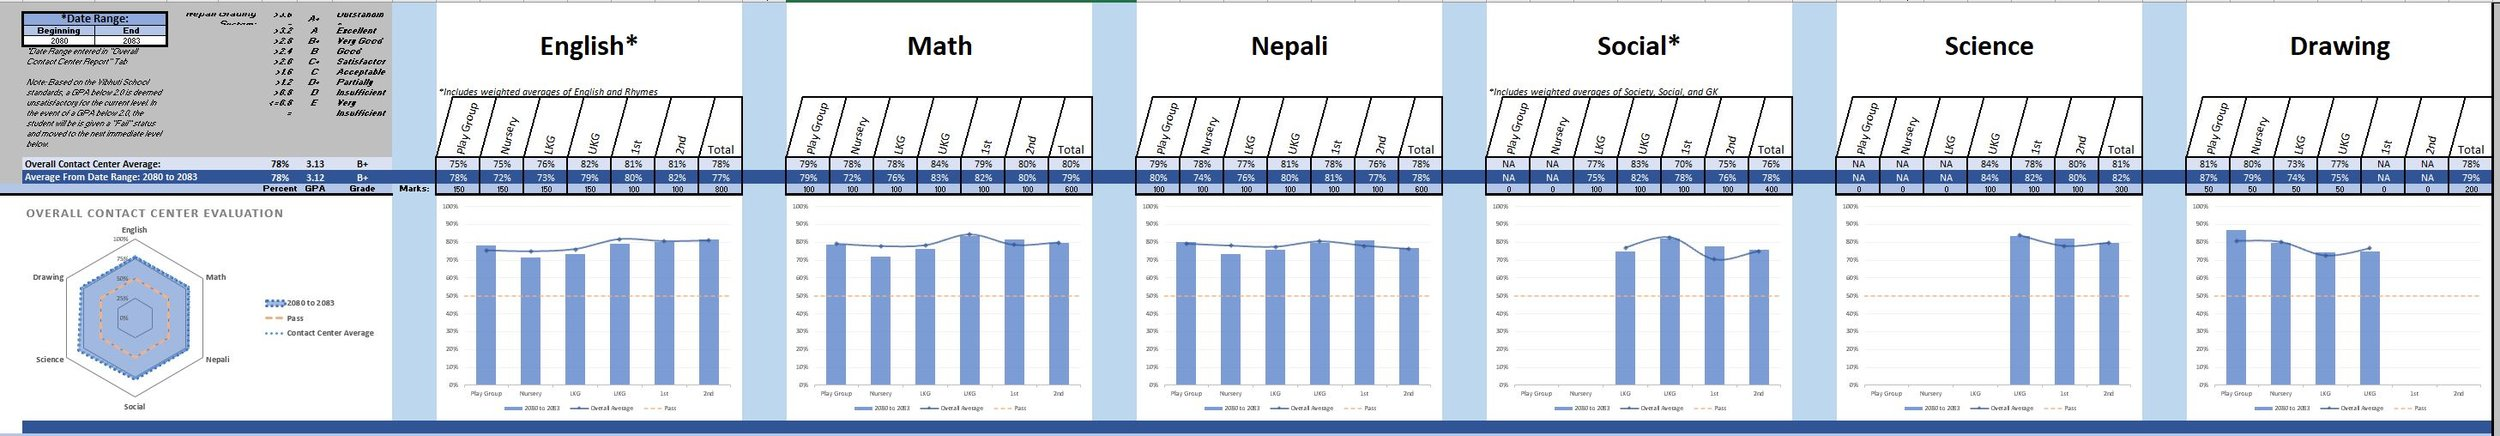 Overall contact center evaluation graphs 2.JPG